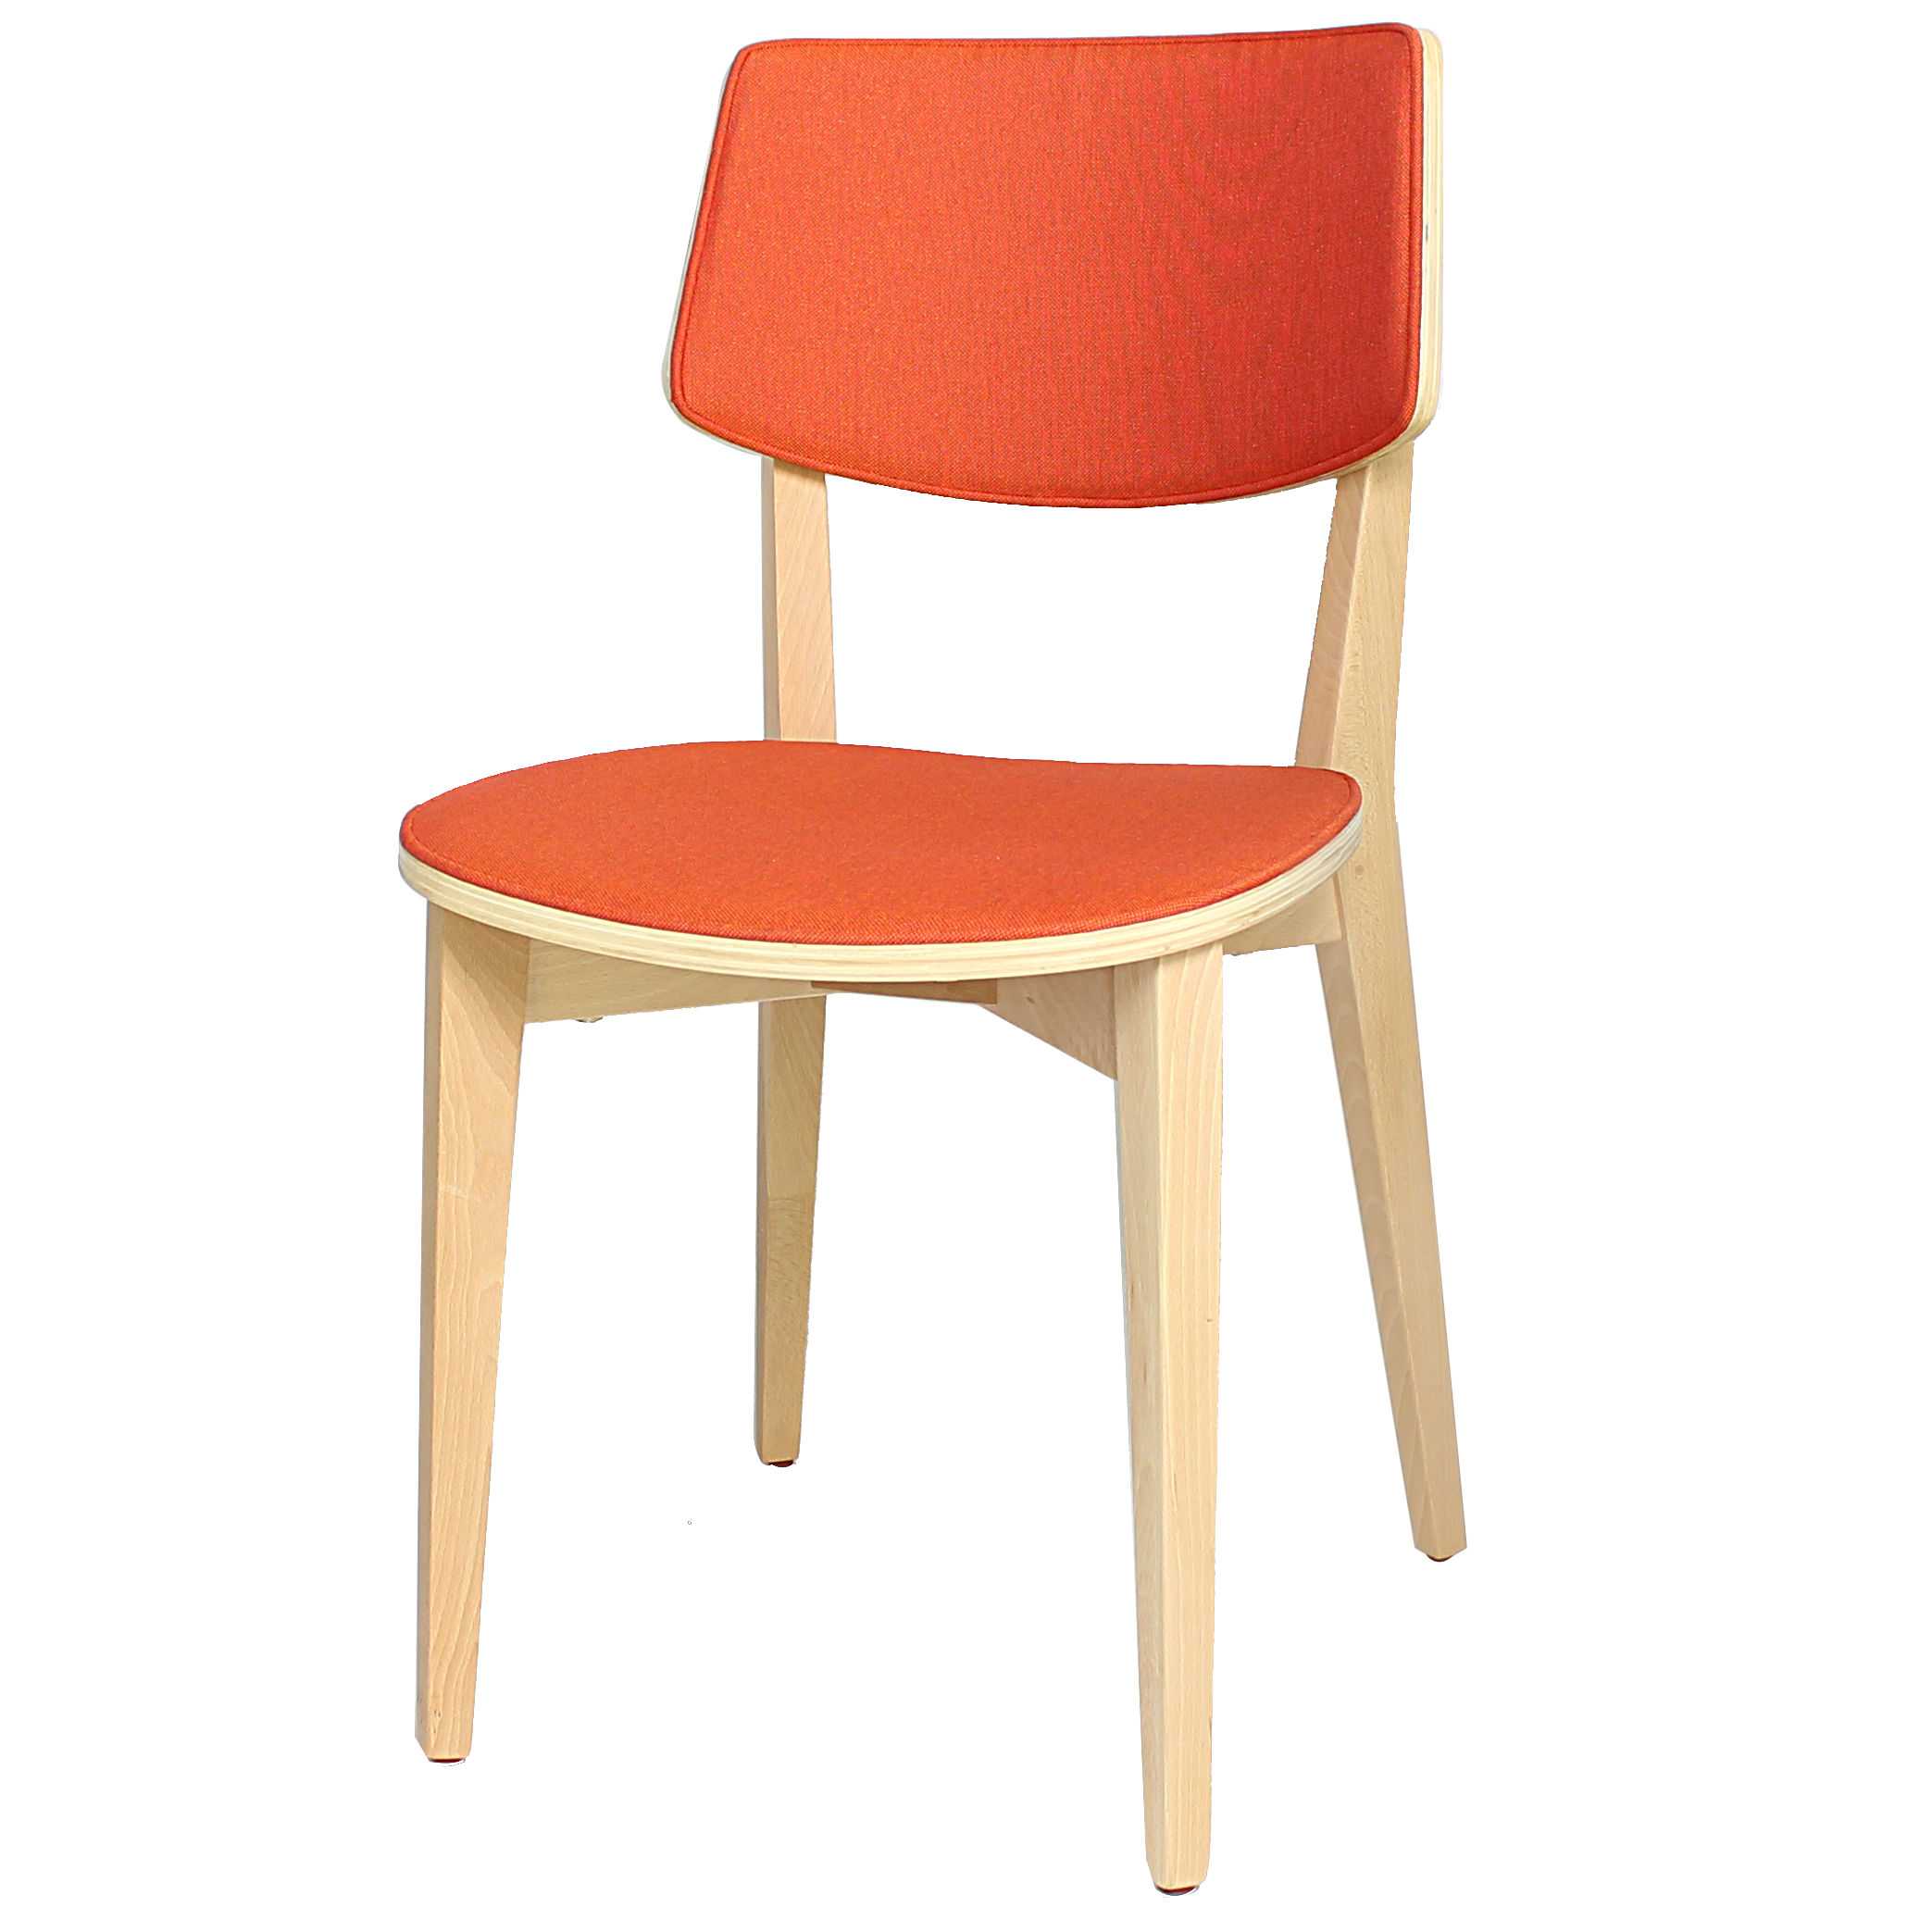 Otto Chair (Upholstered Seat and Back Pad)